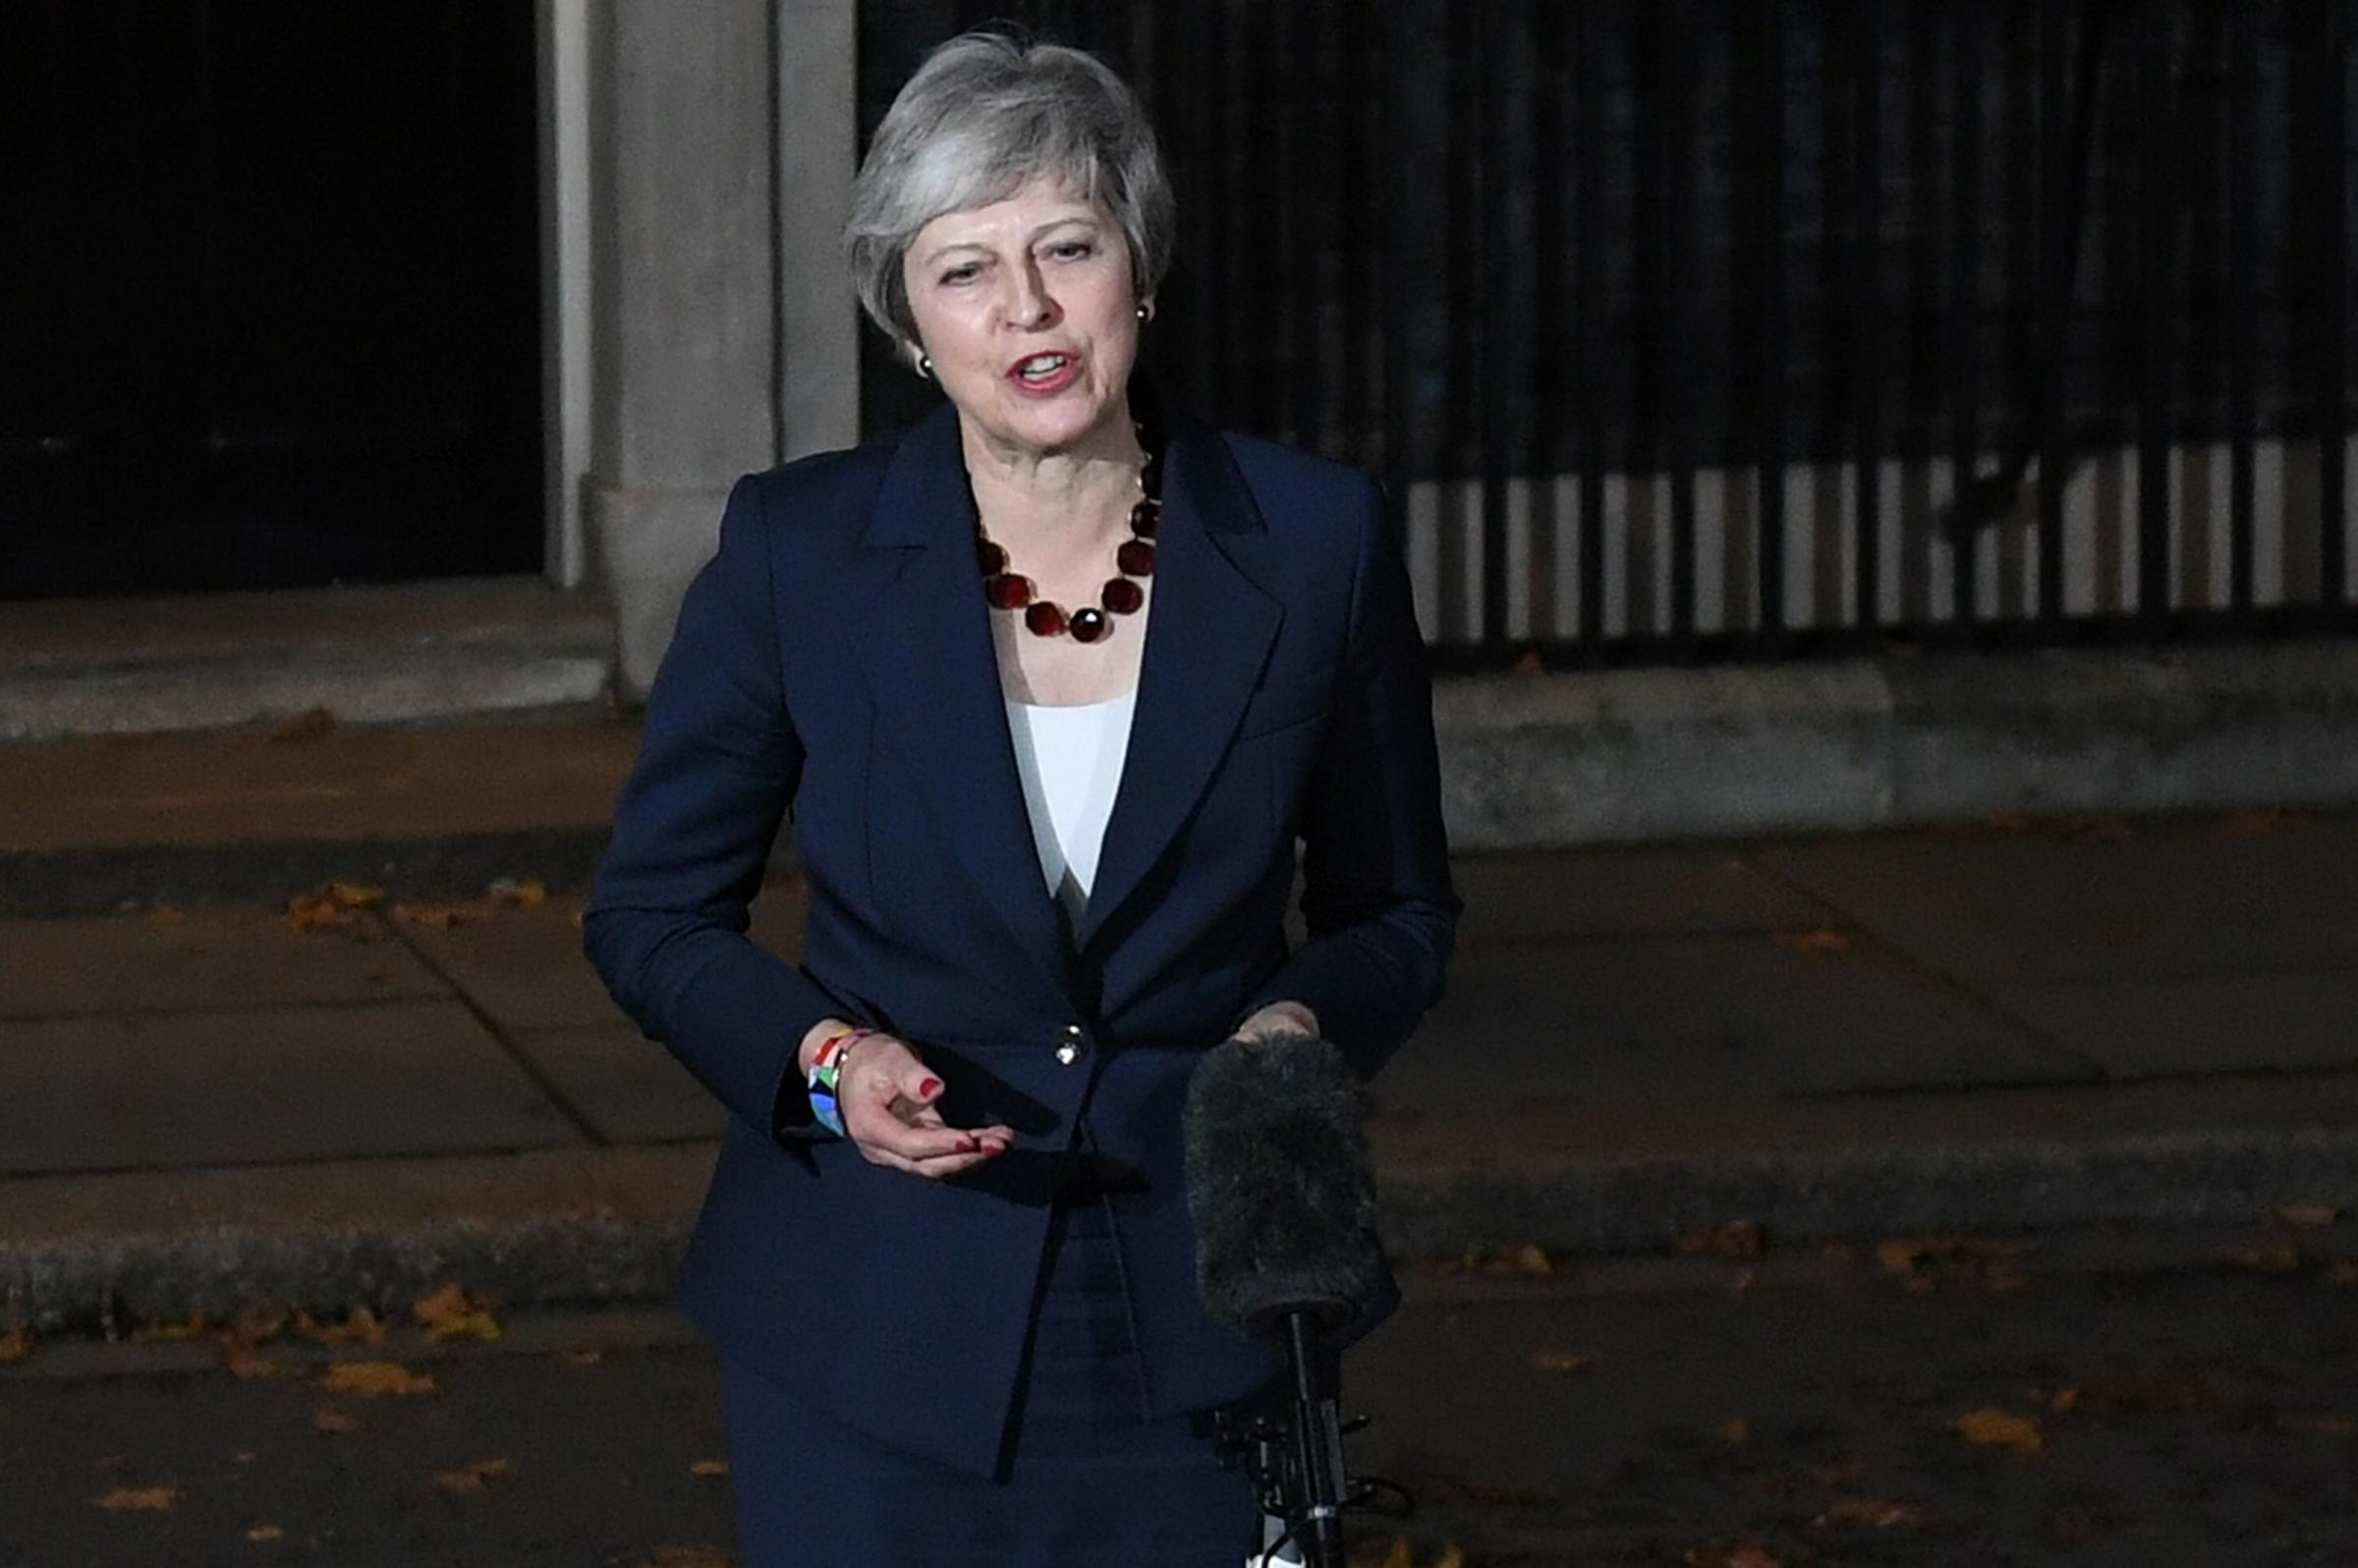 Prime Minister Theresa May makes a statement outside 10 Downing Street, London, confirming that Cabinet has agreed the draft Brexit withdrawal agreement. Picture: Stefan Rousseau/PA Wire